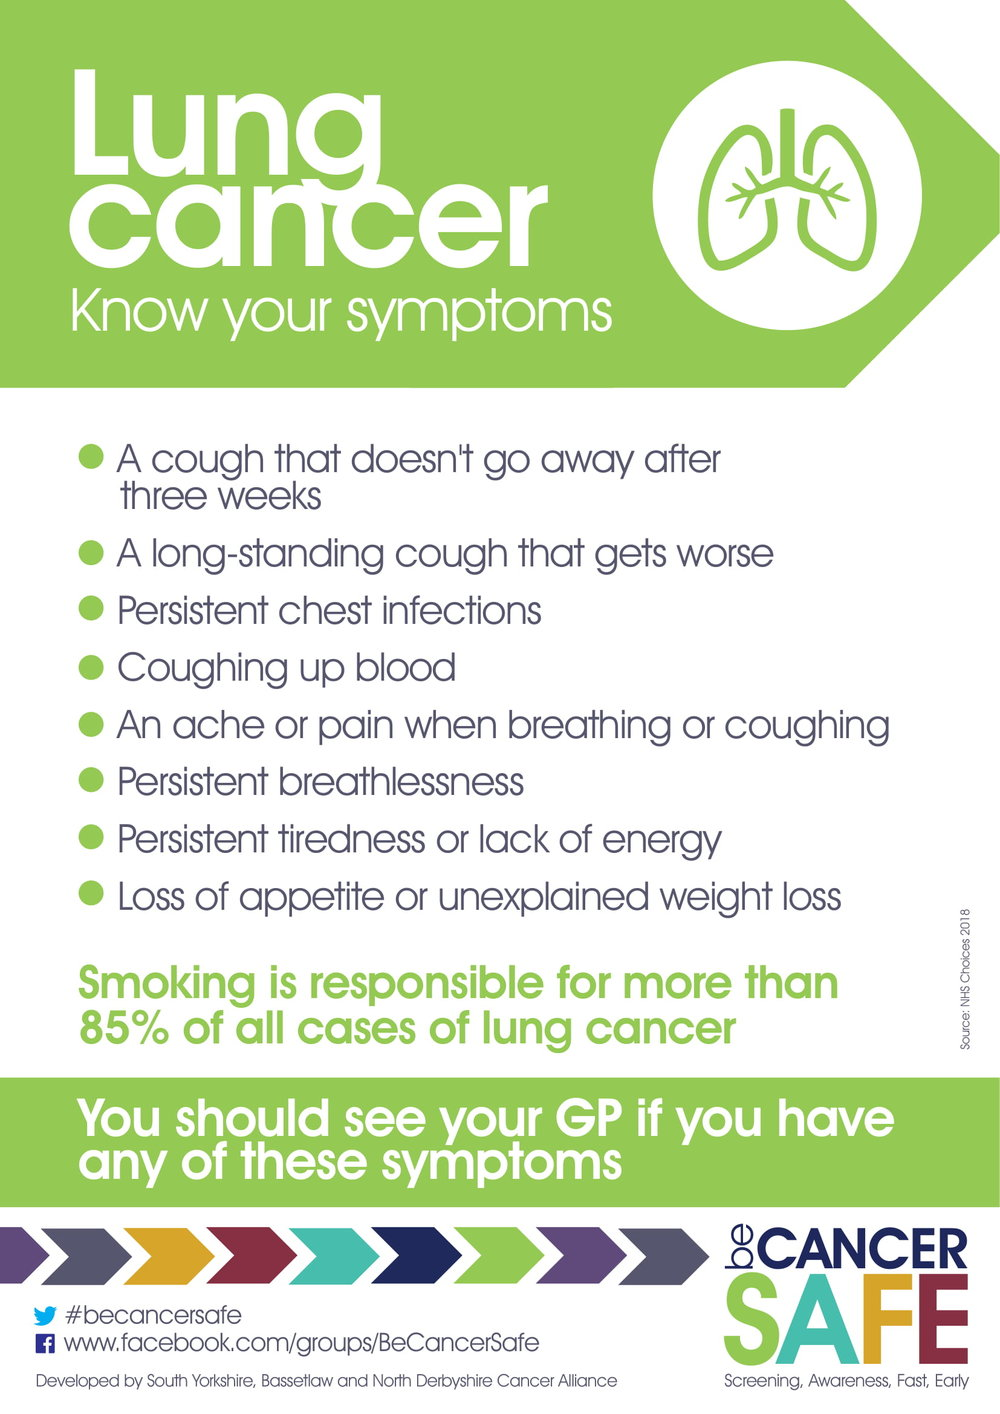 lung_cancer_poster_copy-1.jpg